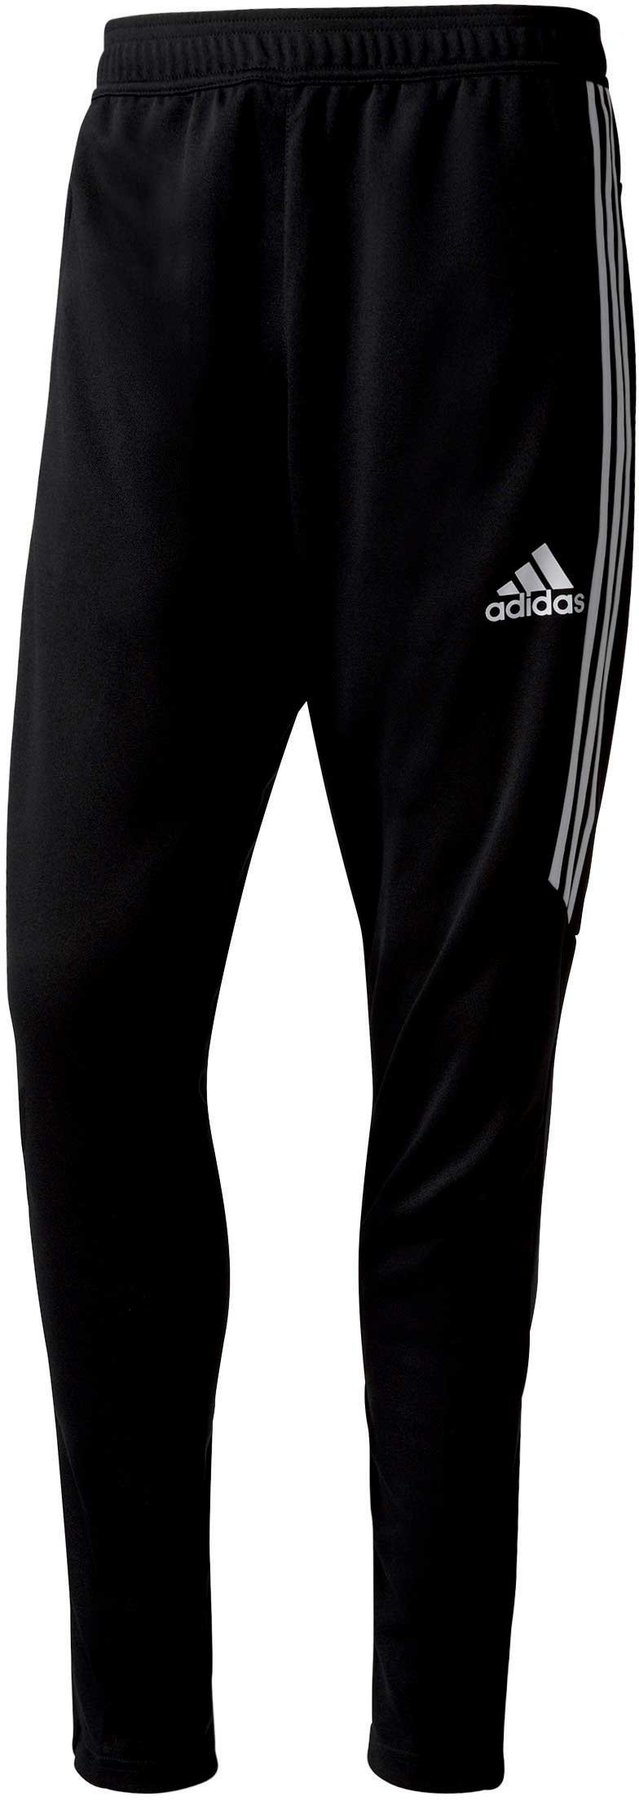 adidas performance tiro 17 trainingshose damen